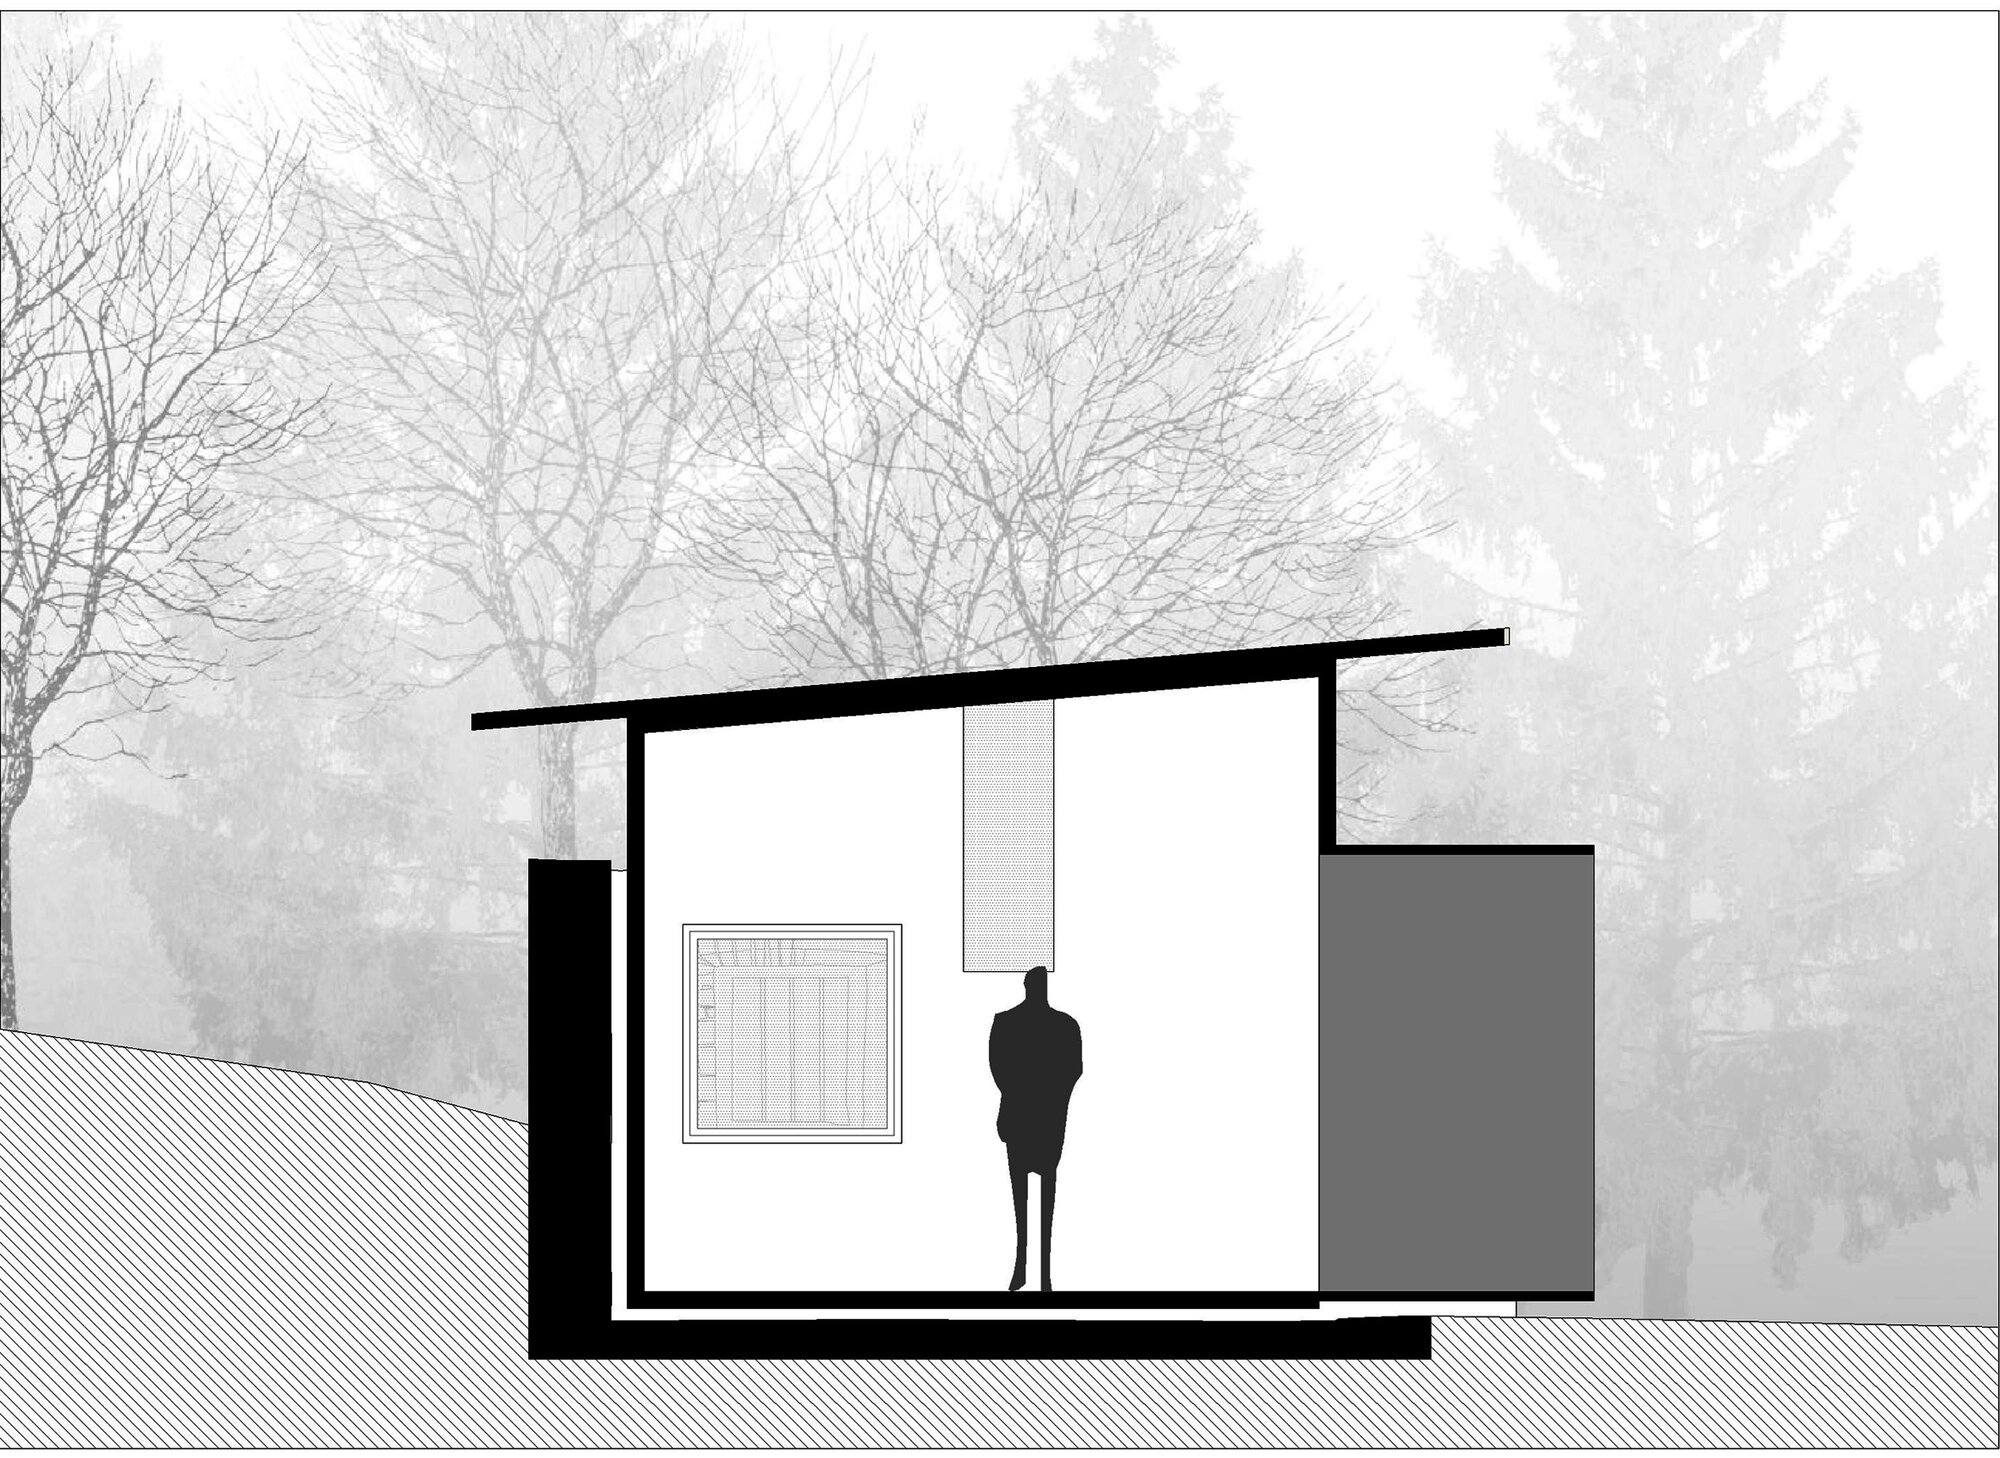 Little House on the House - Studio x Architettura - Cross Section - Humble Homes